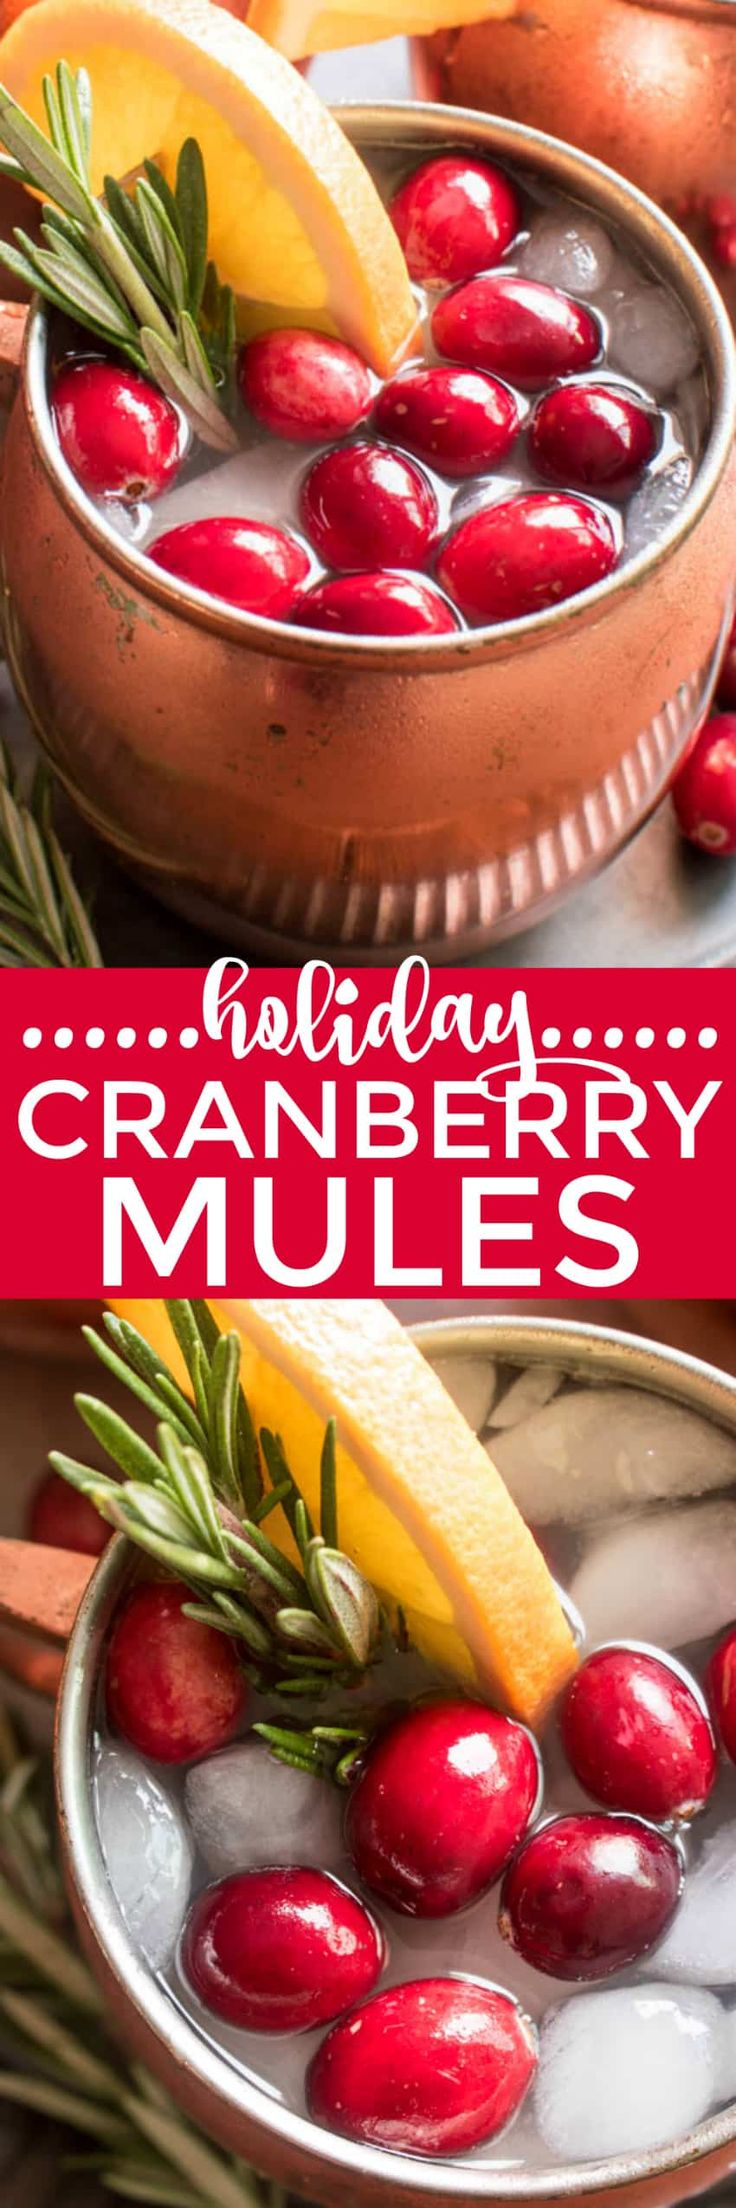 If you love Moscow Mules, these Holiday Cranberry Mules are sure to be a hit! Loaded with the delicious flavors of cranberry, orange, and ginger, and garnished with a sprig of fresh rosemary, these Mules are the perfect cocktails for your holiday season. And they're not only delicious, but beautiful, too! Which makes them an obvious addition to your Thanksgiving, Christmas, and New Years Eve menu. Best of all, these drinks come together quickly with just a handful of simple…